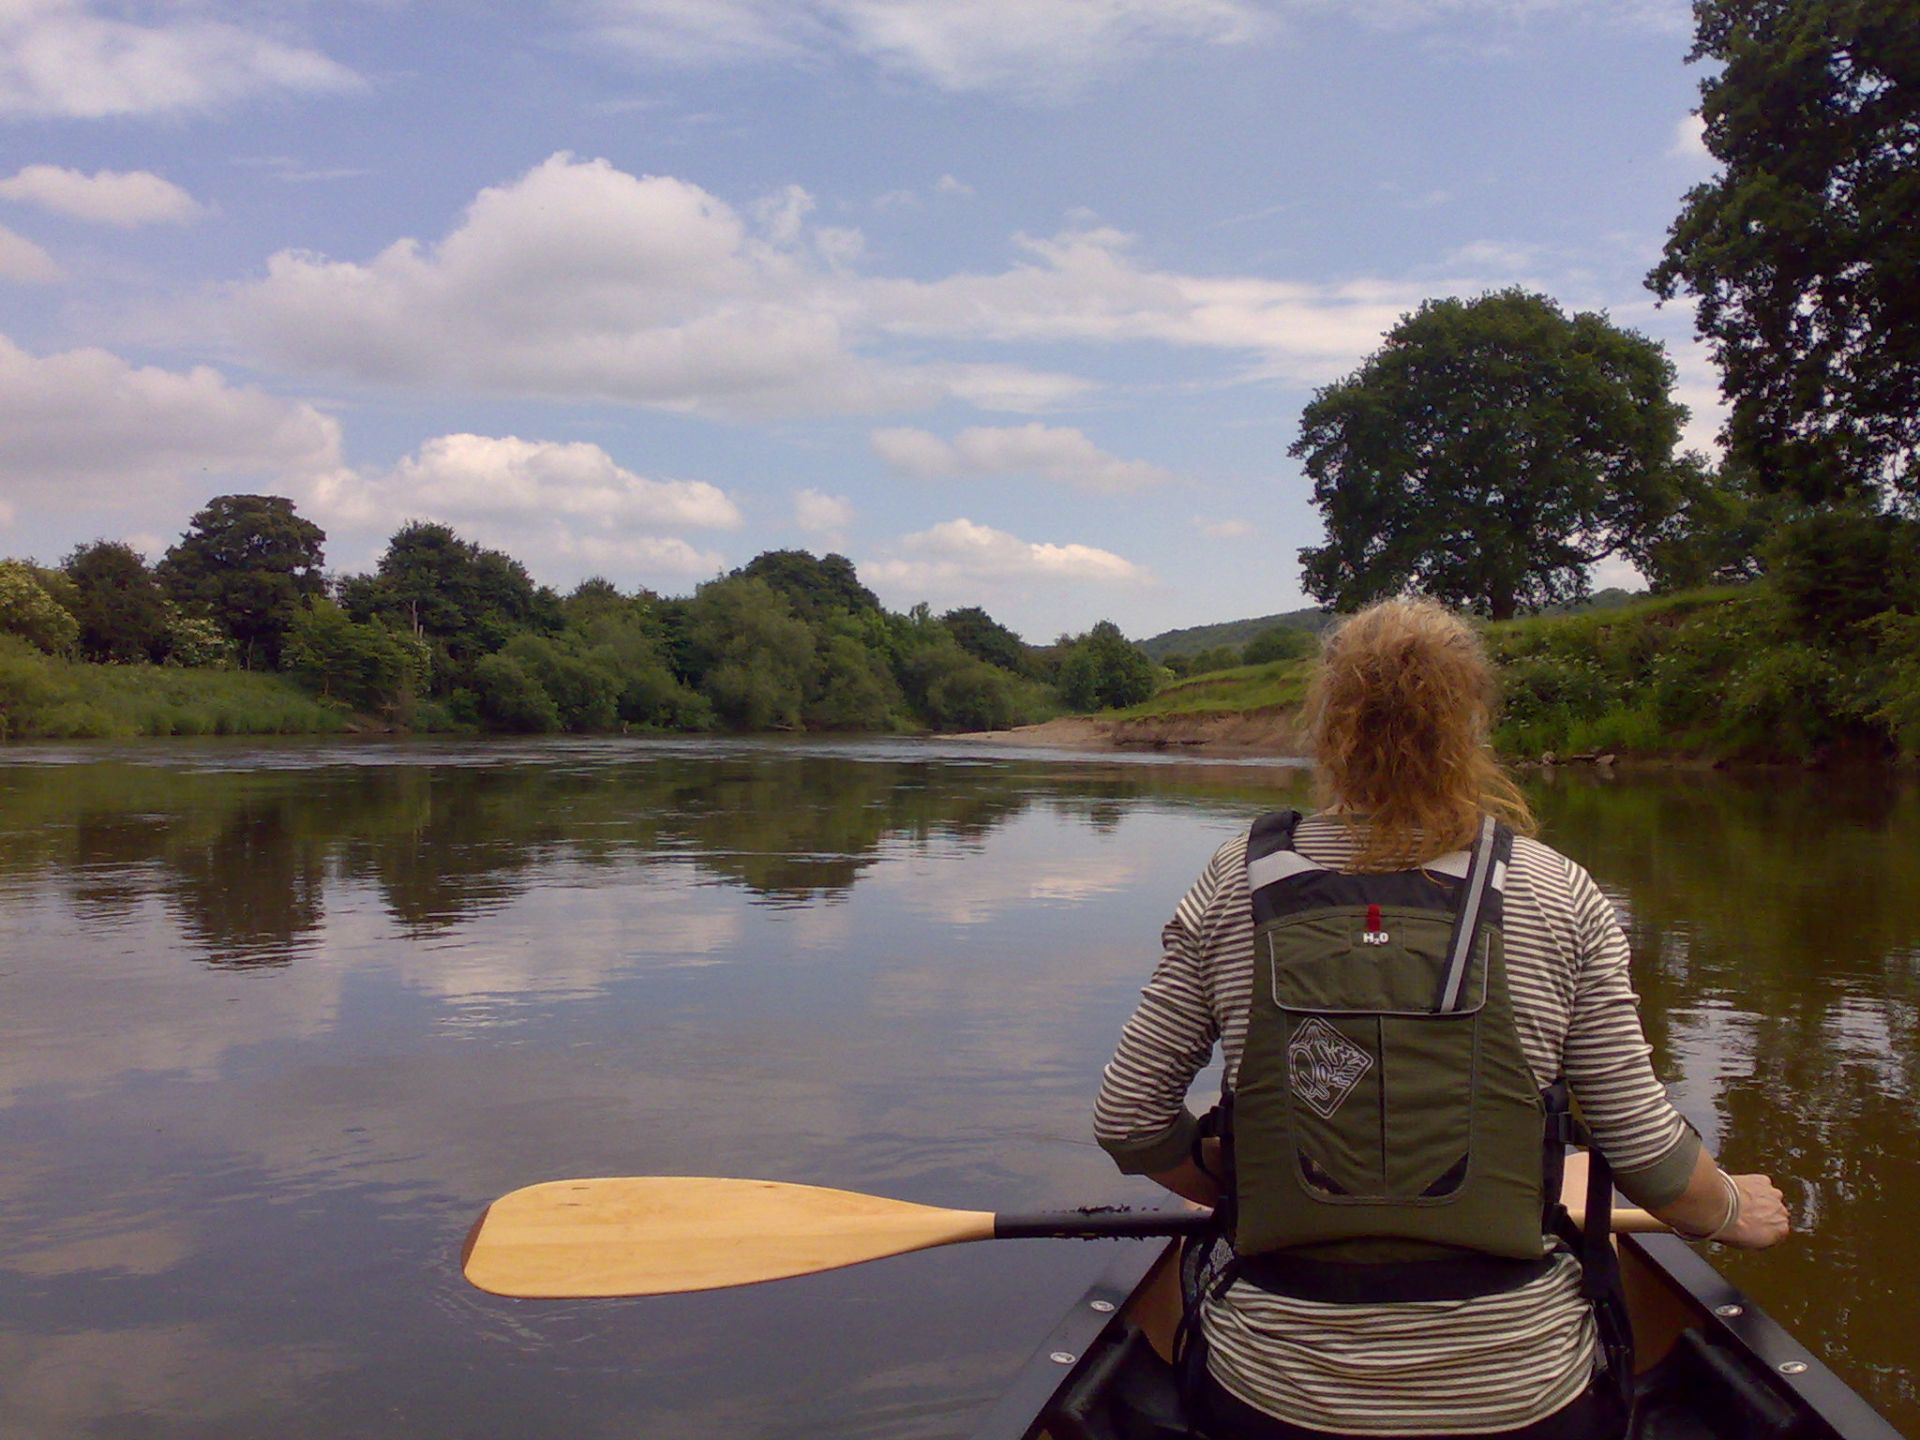 On the river at Hoarwithy2